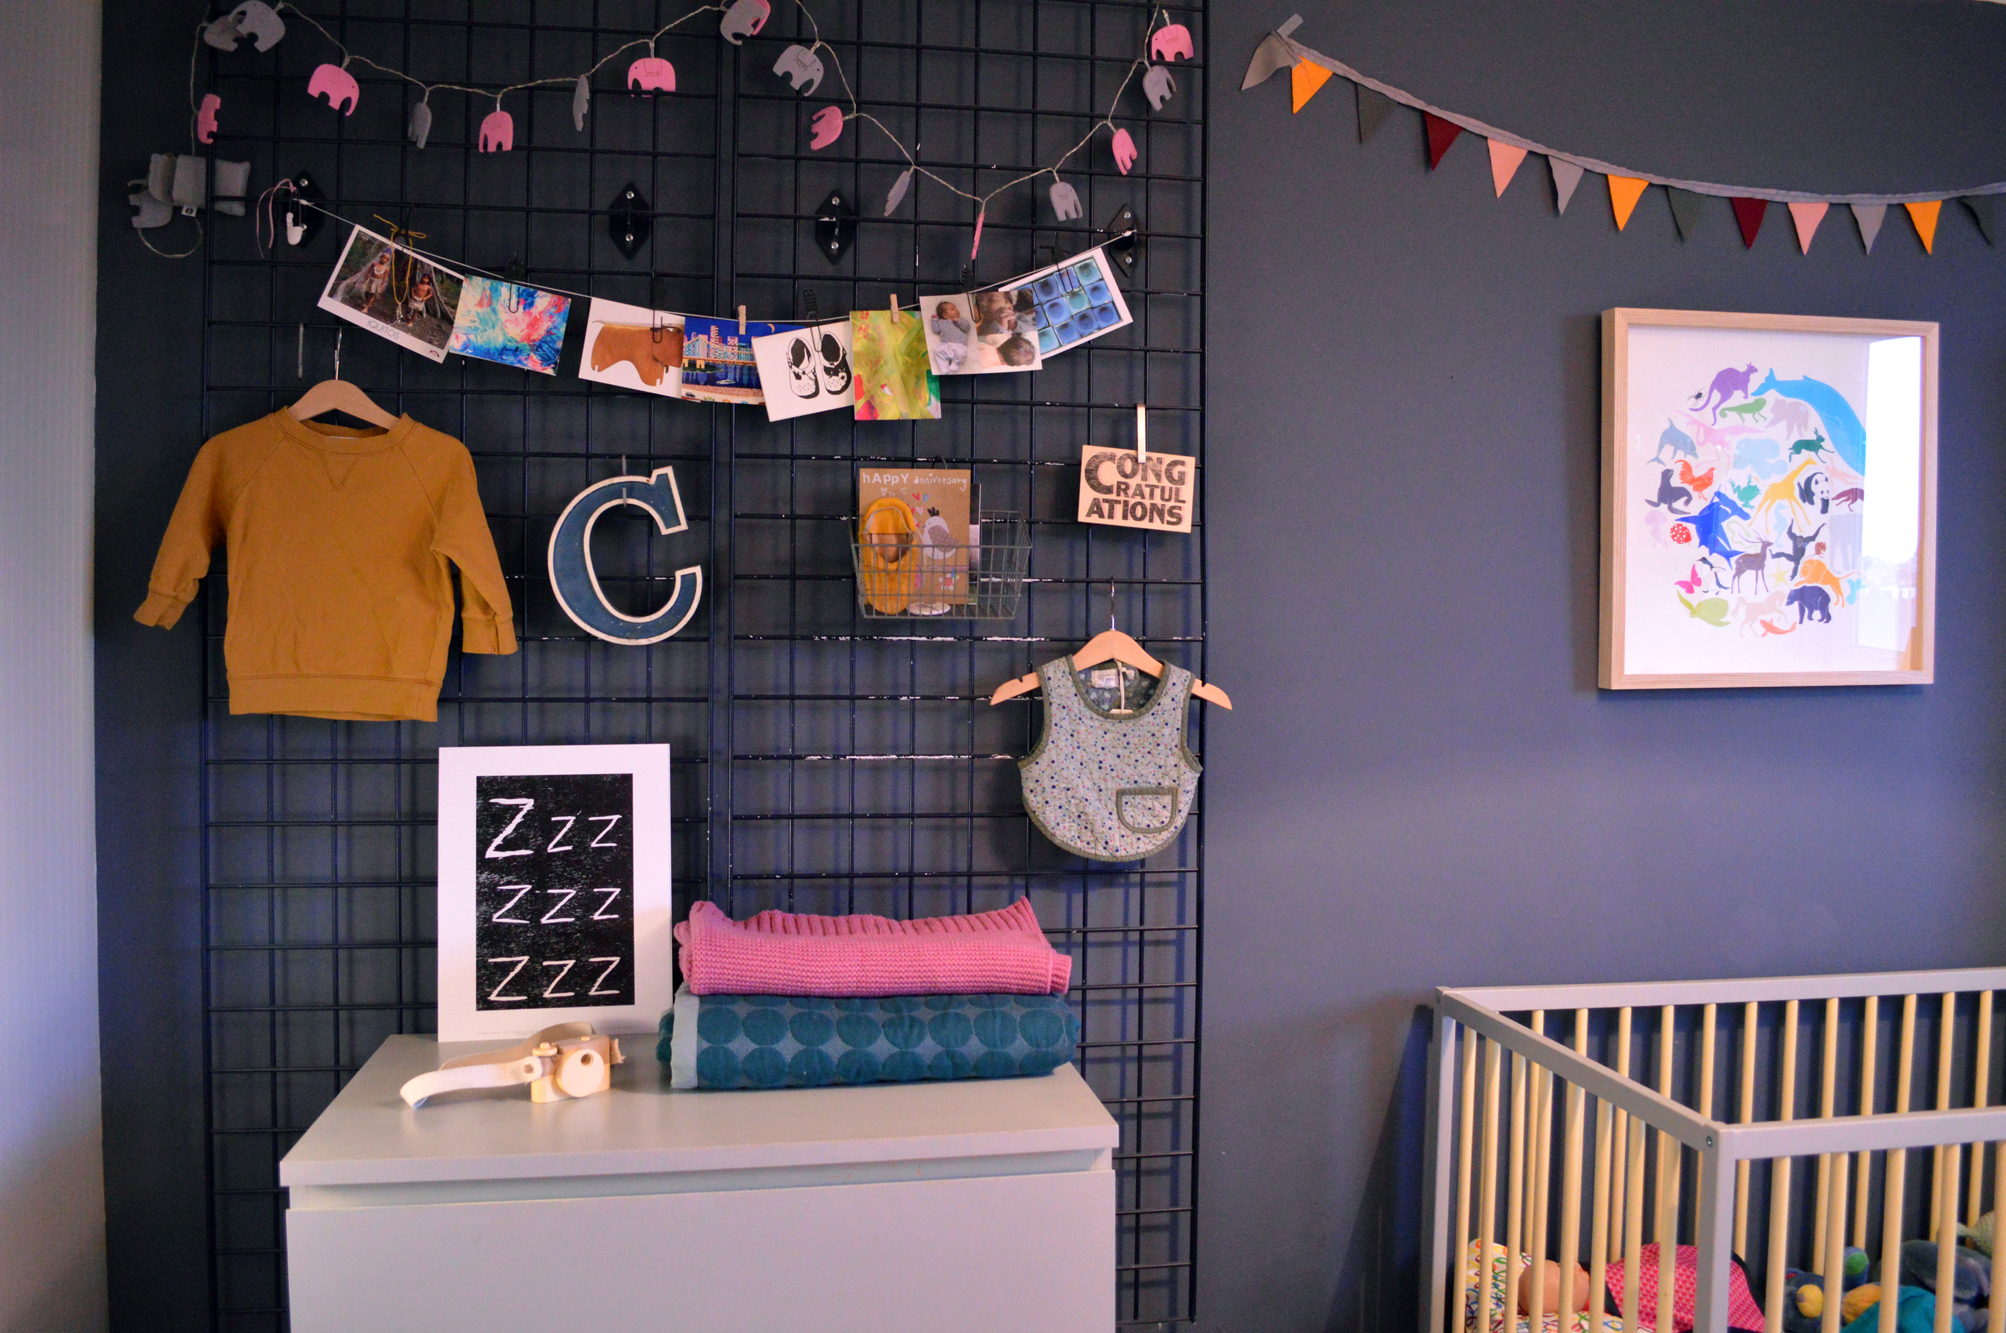 An eclectic mix of Bon Tot clothing, gifts and handmade objects decorate Clemence's room